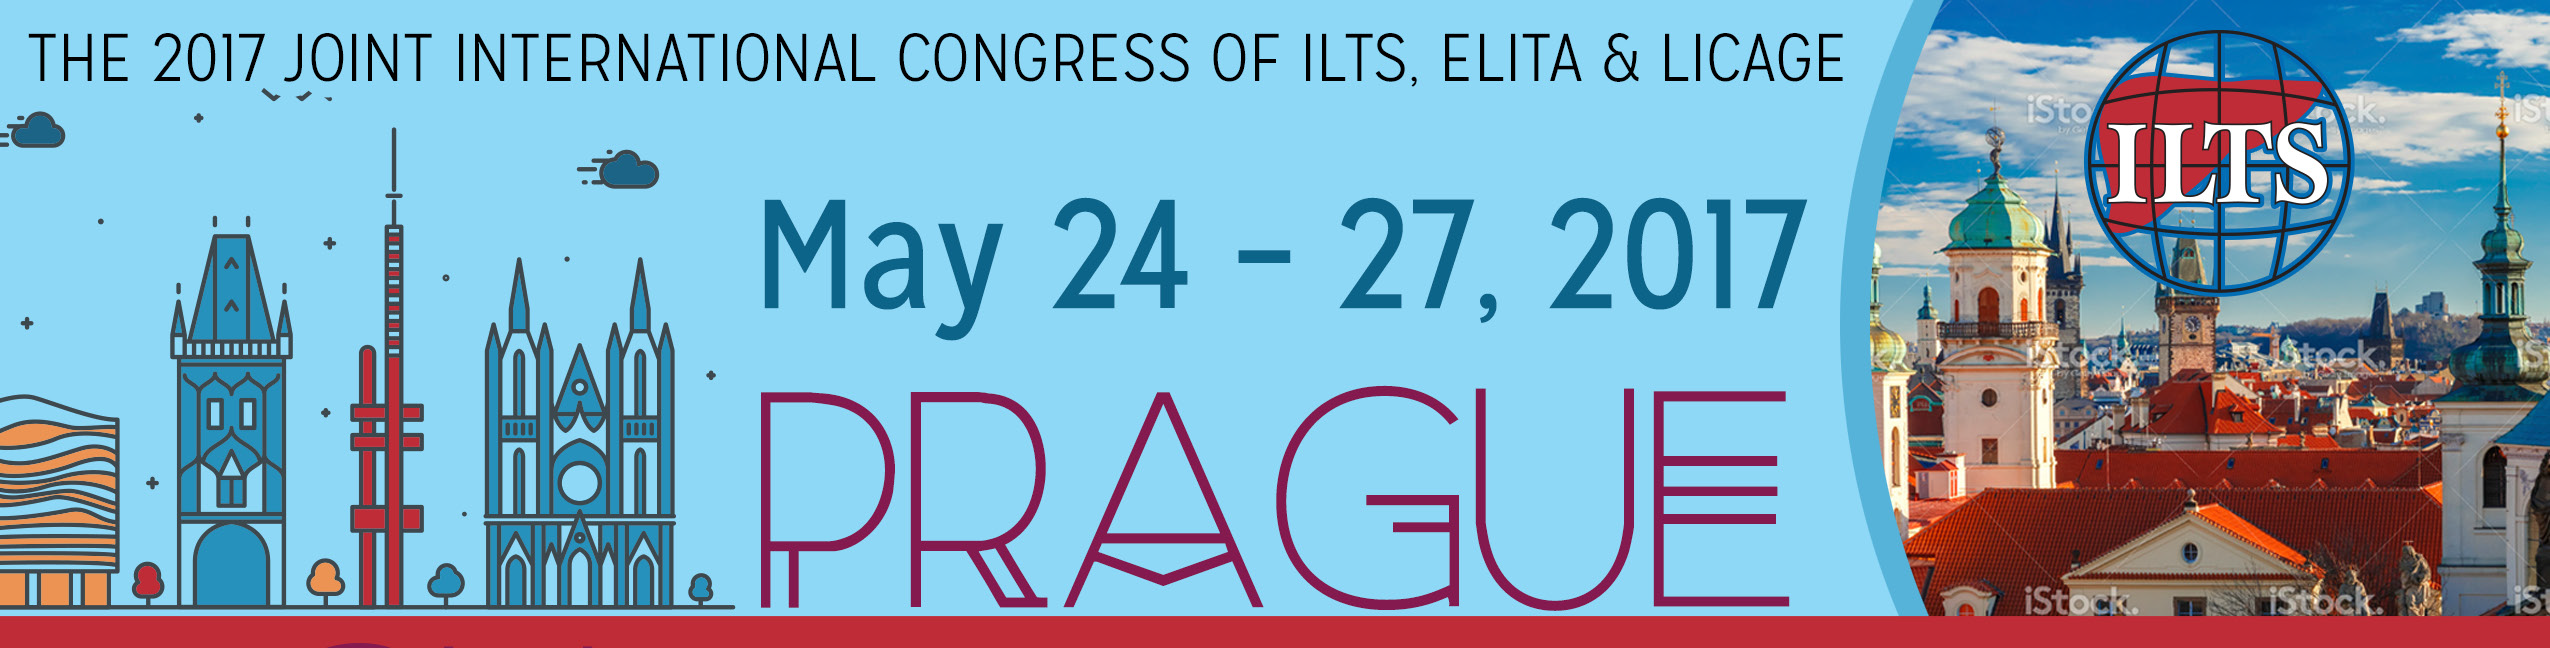 The Joint International Congress of ILTS, ELITA & LICAGE